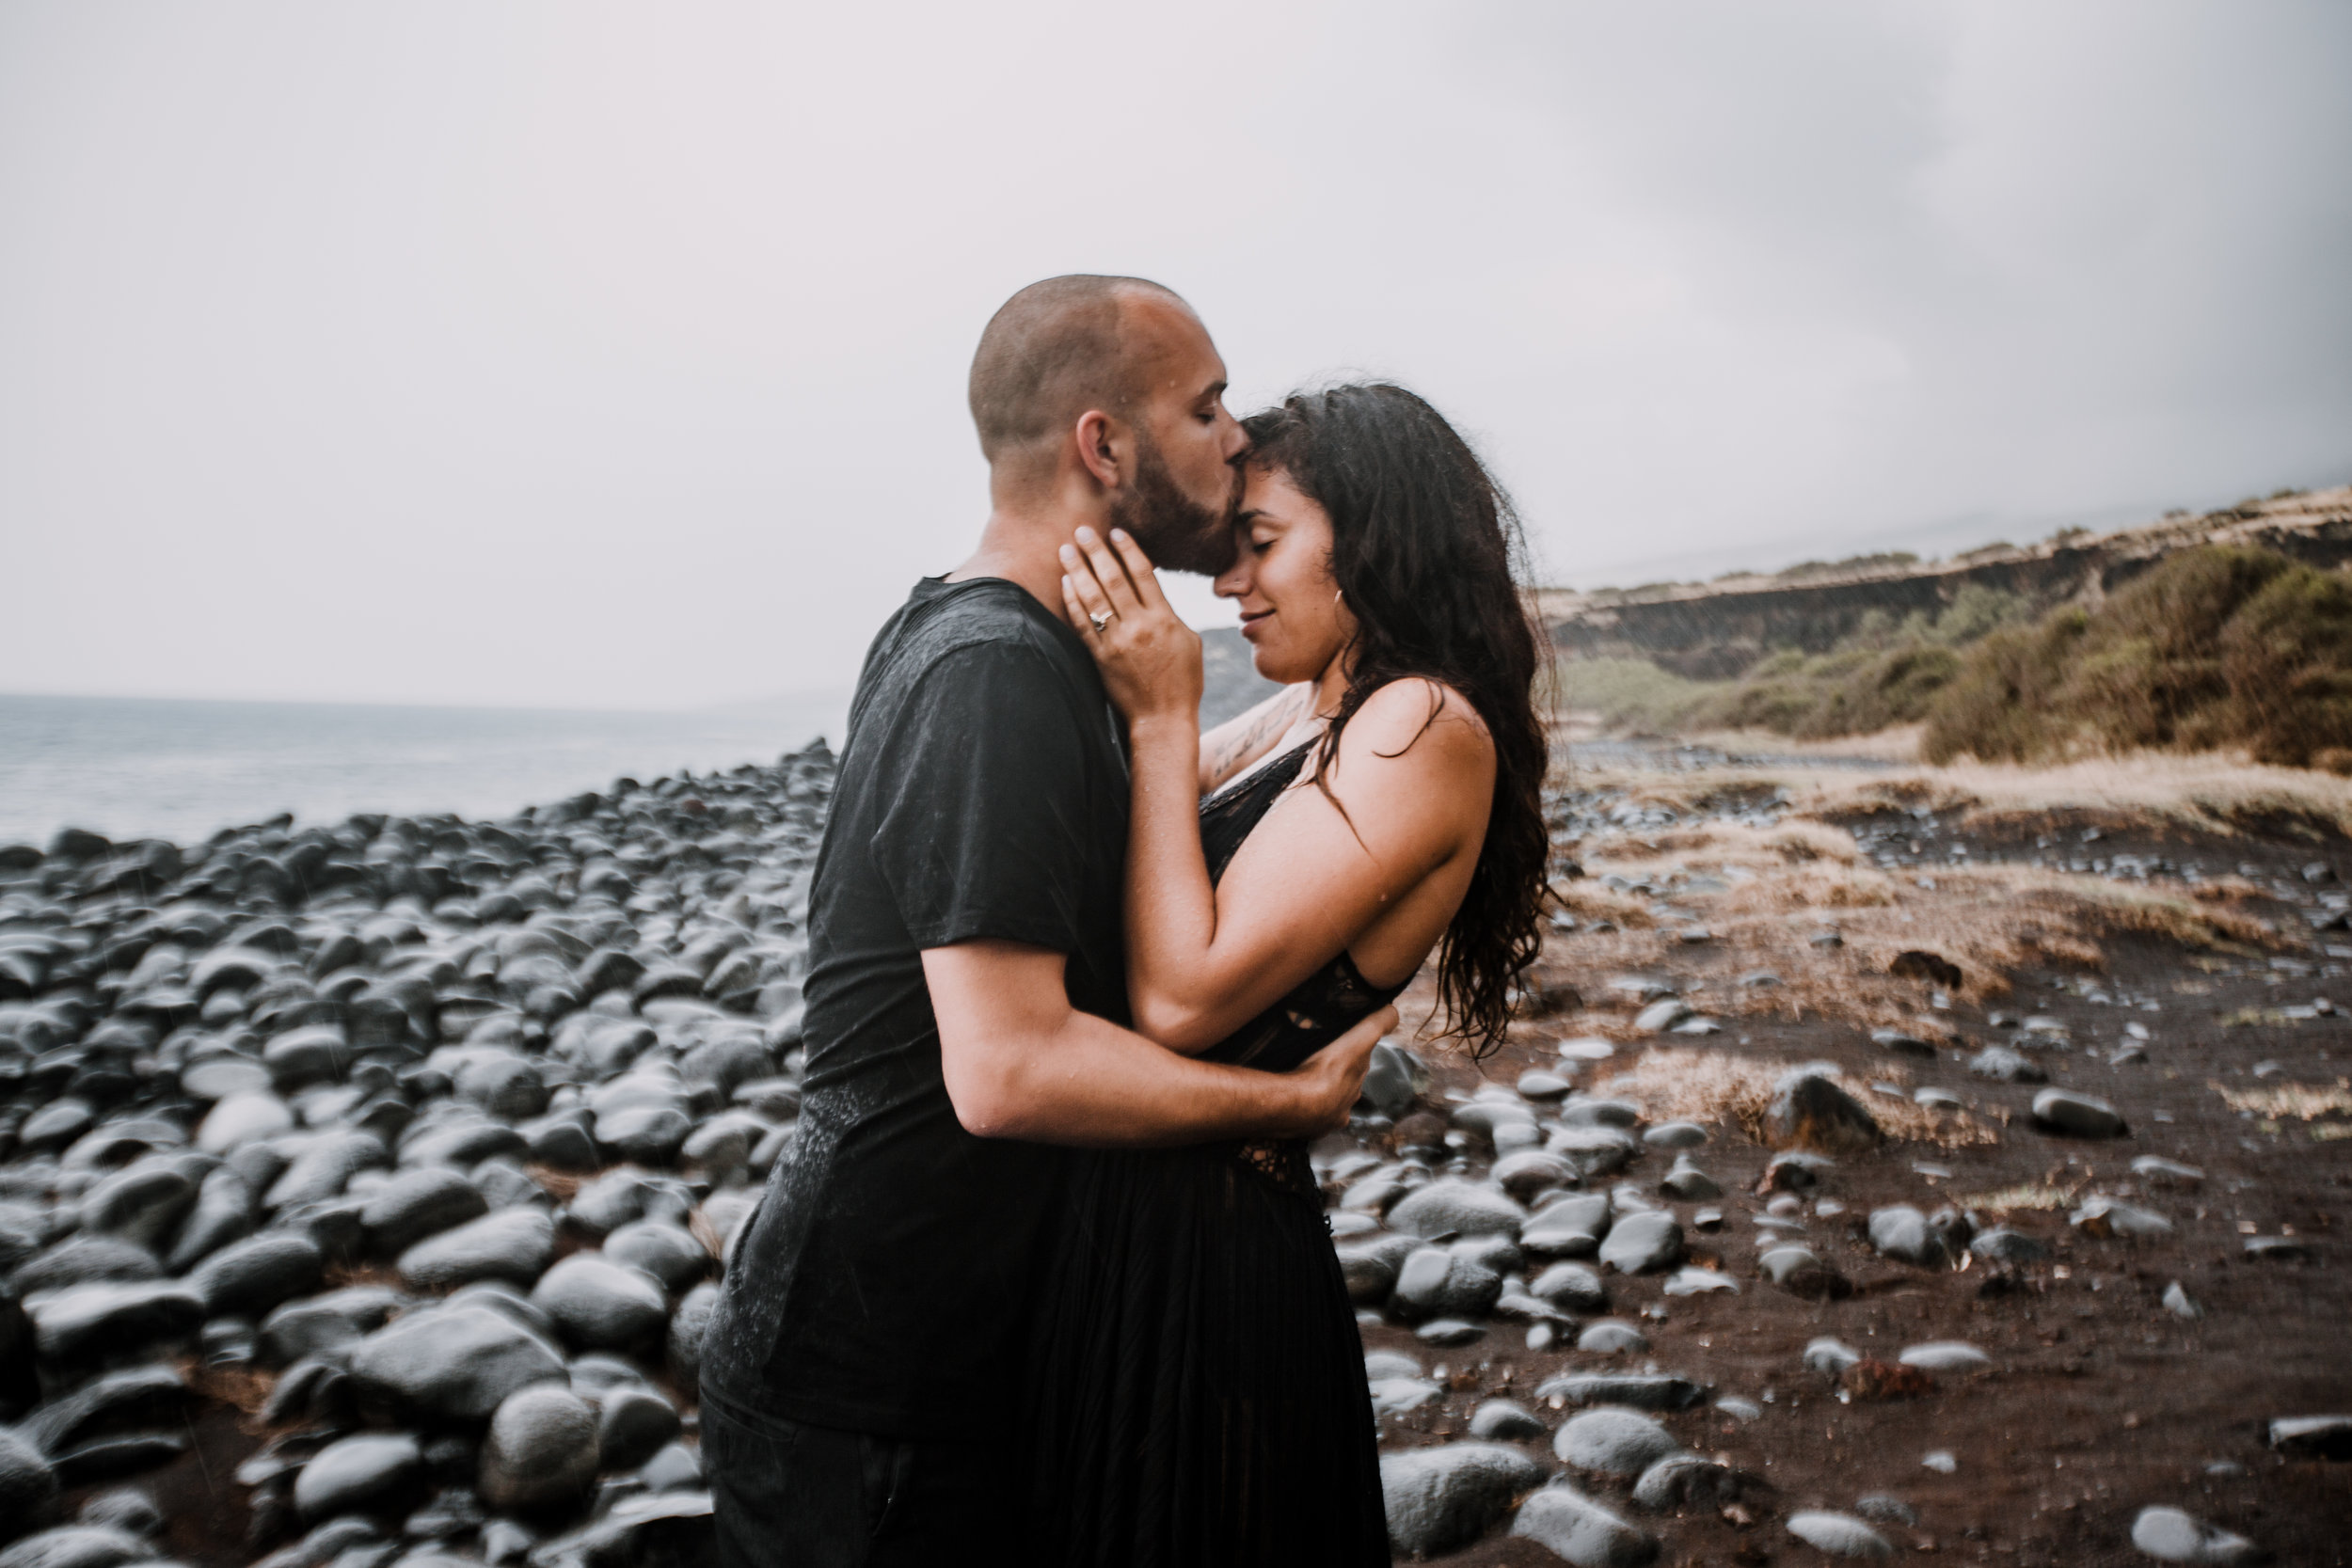 couple on kaupo beach, hawaiian volcanic eruption, lava flow rock, haleakala national park, hawaii wedding photographer, hawaii elopement photographer, maui wedding, maui engagements, maui elopement